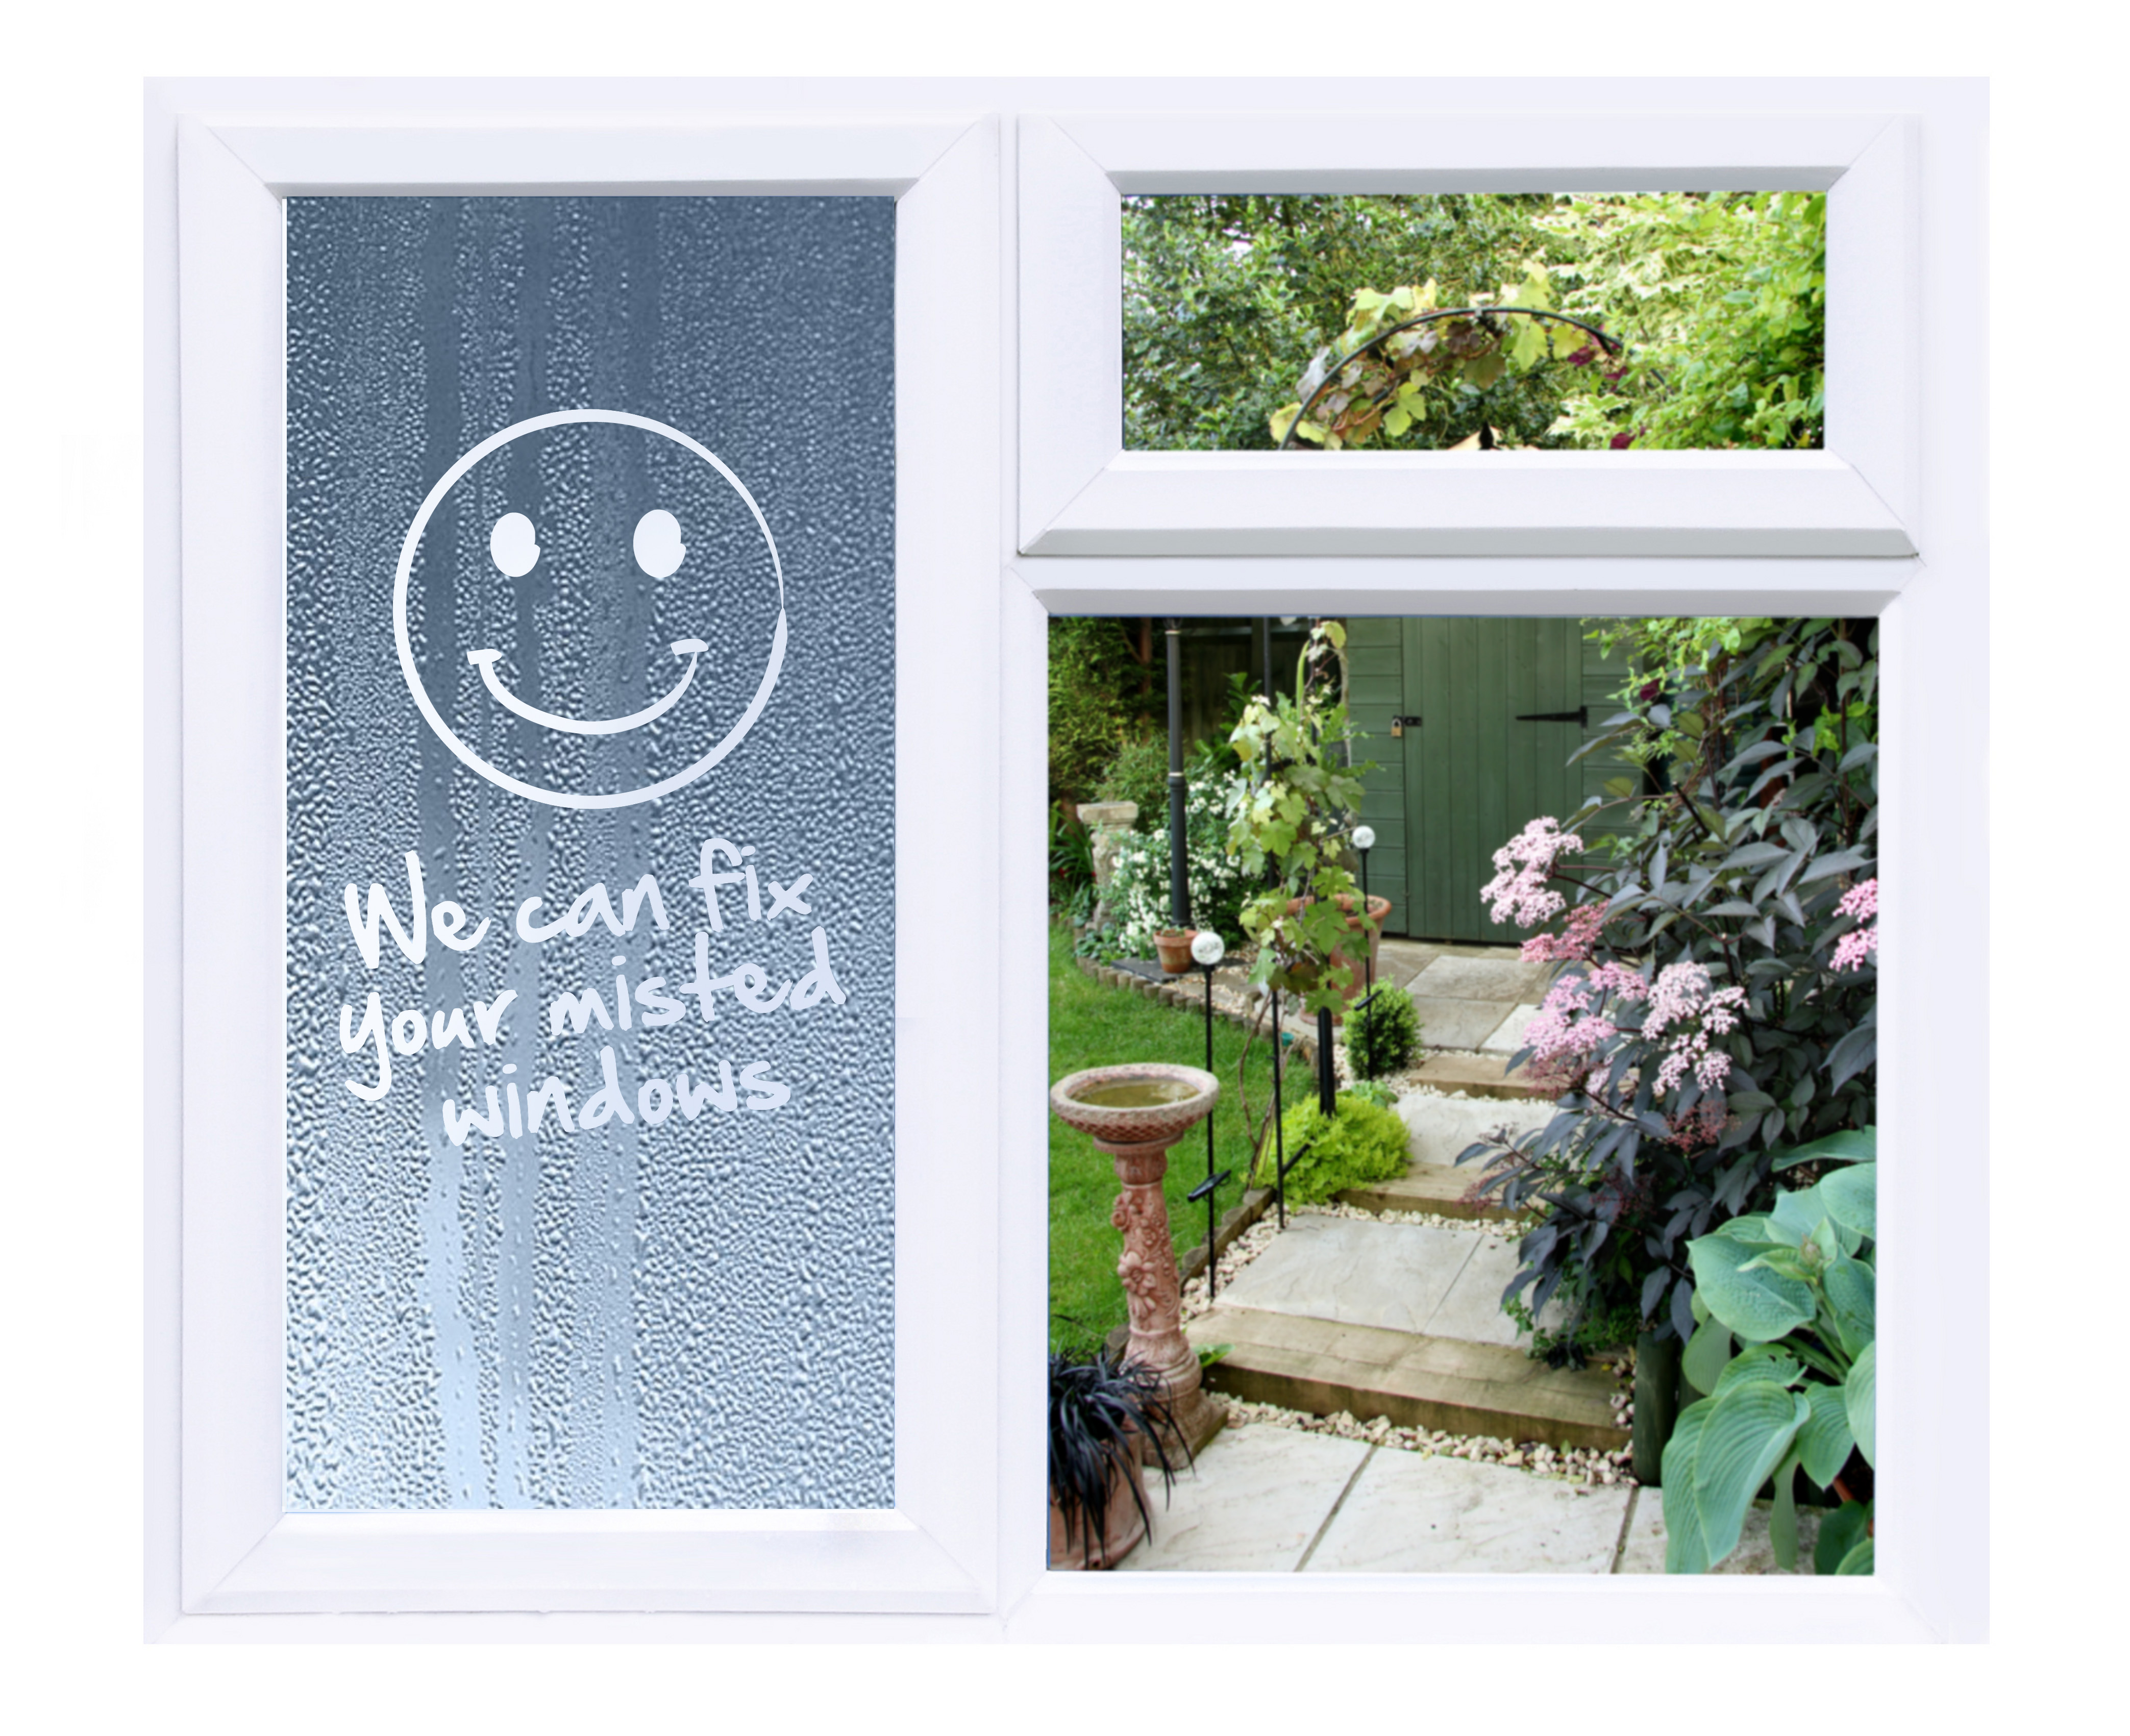 Misted double glazing repairs double glazing repairs wirral for Double glazing window repairs